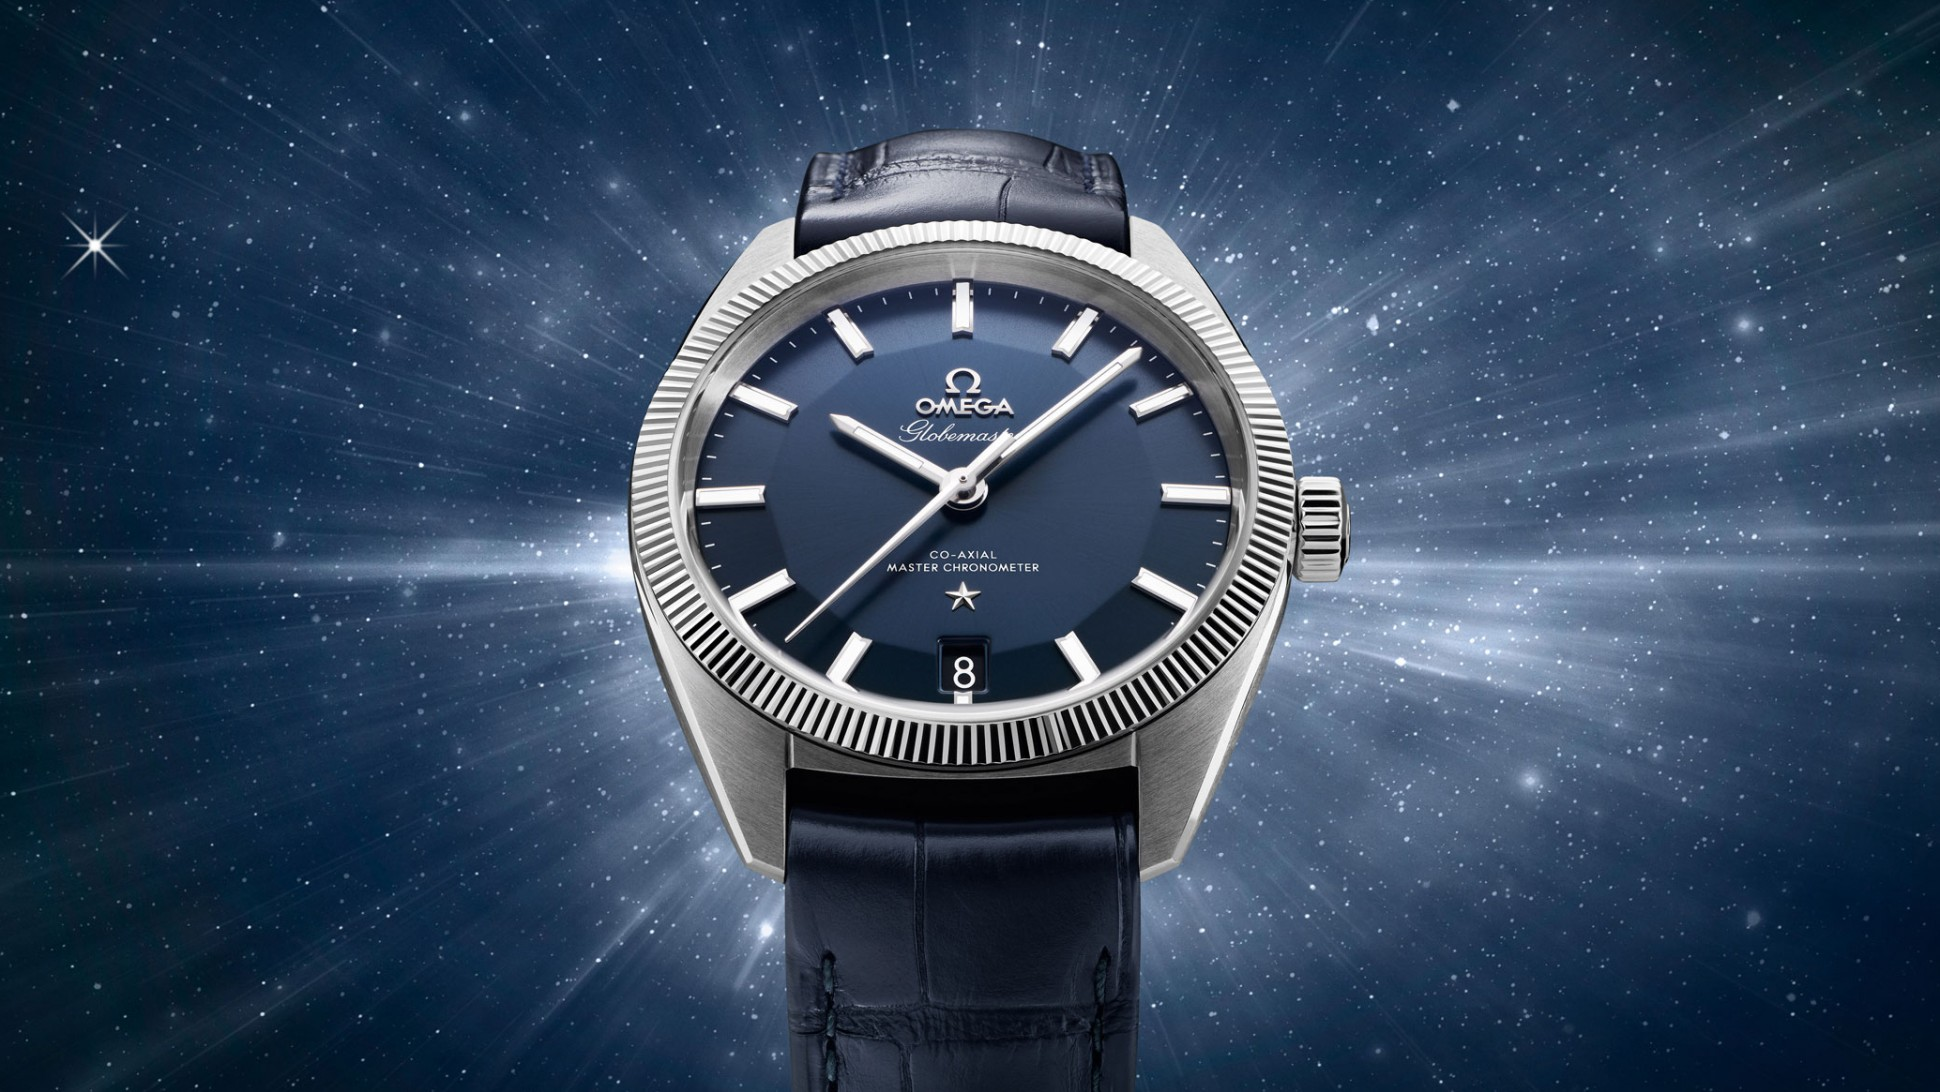 Omega Globemaster Replica Watches